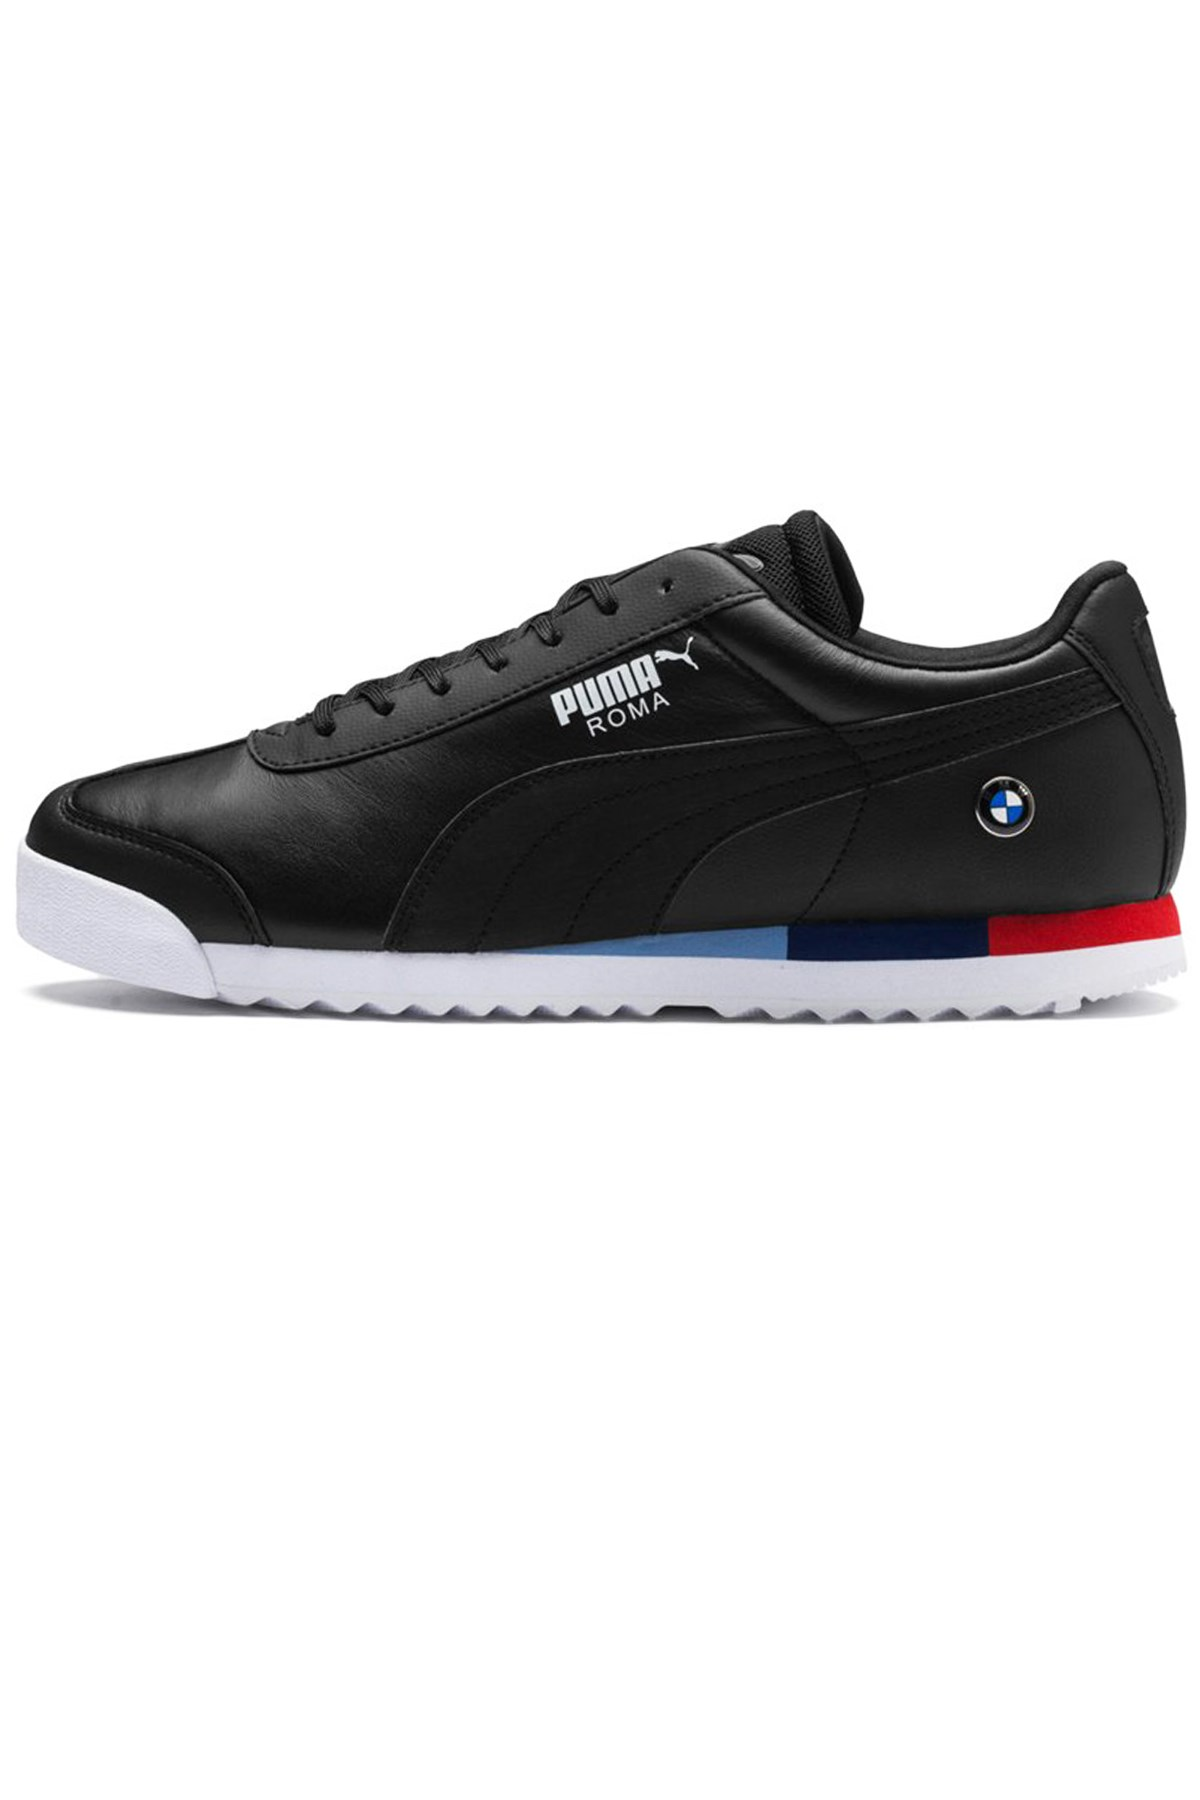 Bmw Motorsport Shoes Puma